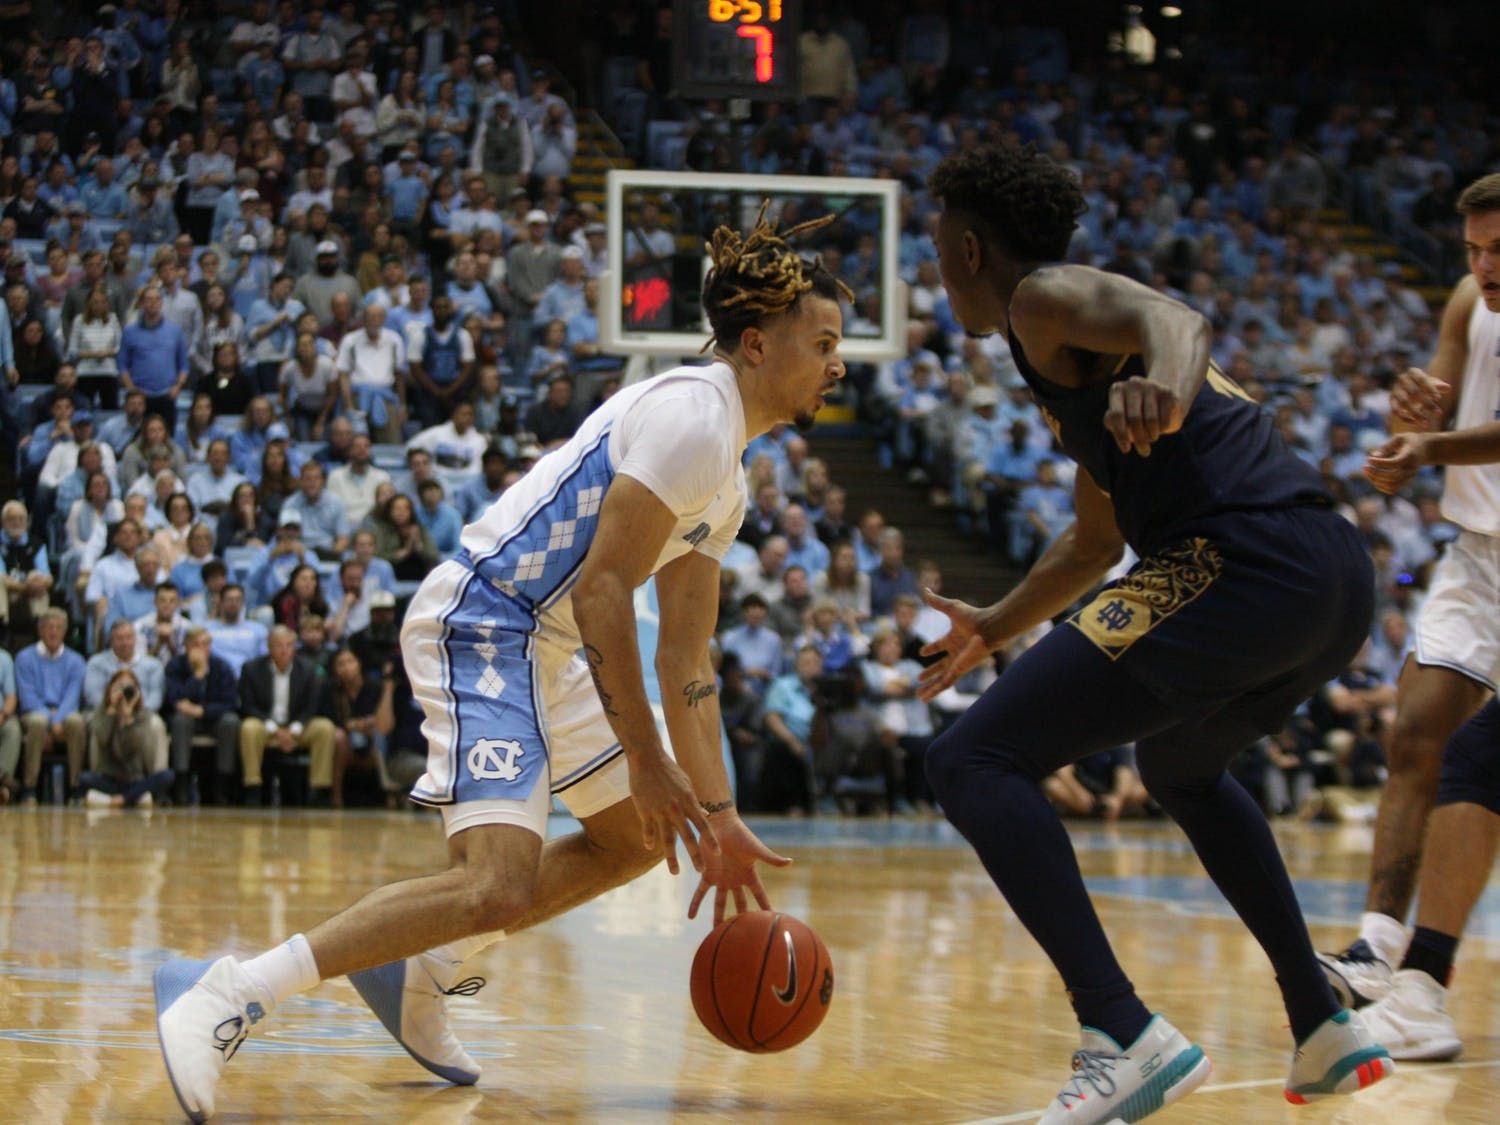 UNC guard Cole Anthony prepares to drive against Notre Dame guard T.J. Gibbs (10) on Wednesday, Nov. 6, 2019 in the Dean E. Smith Center. The Tar Heels beat the Fighting Irish 76-65.